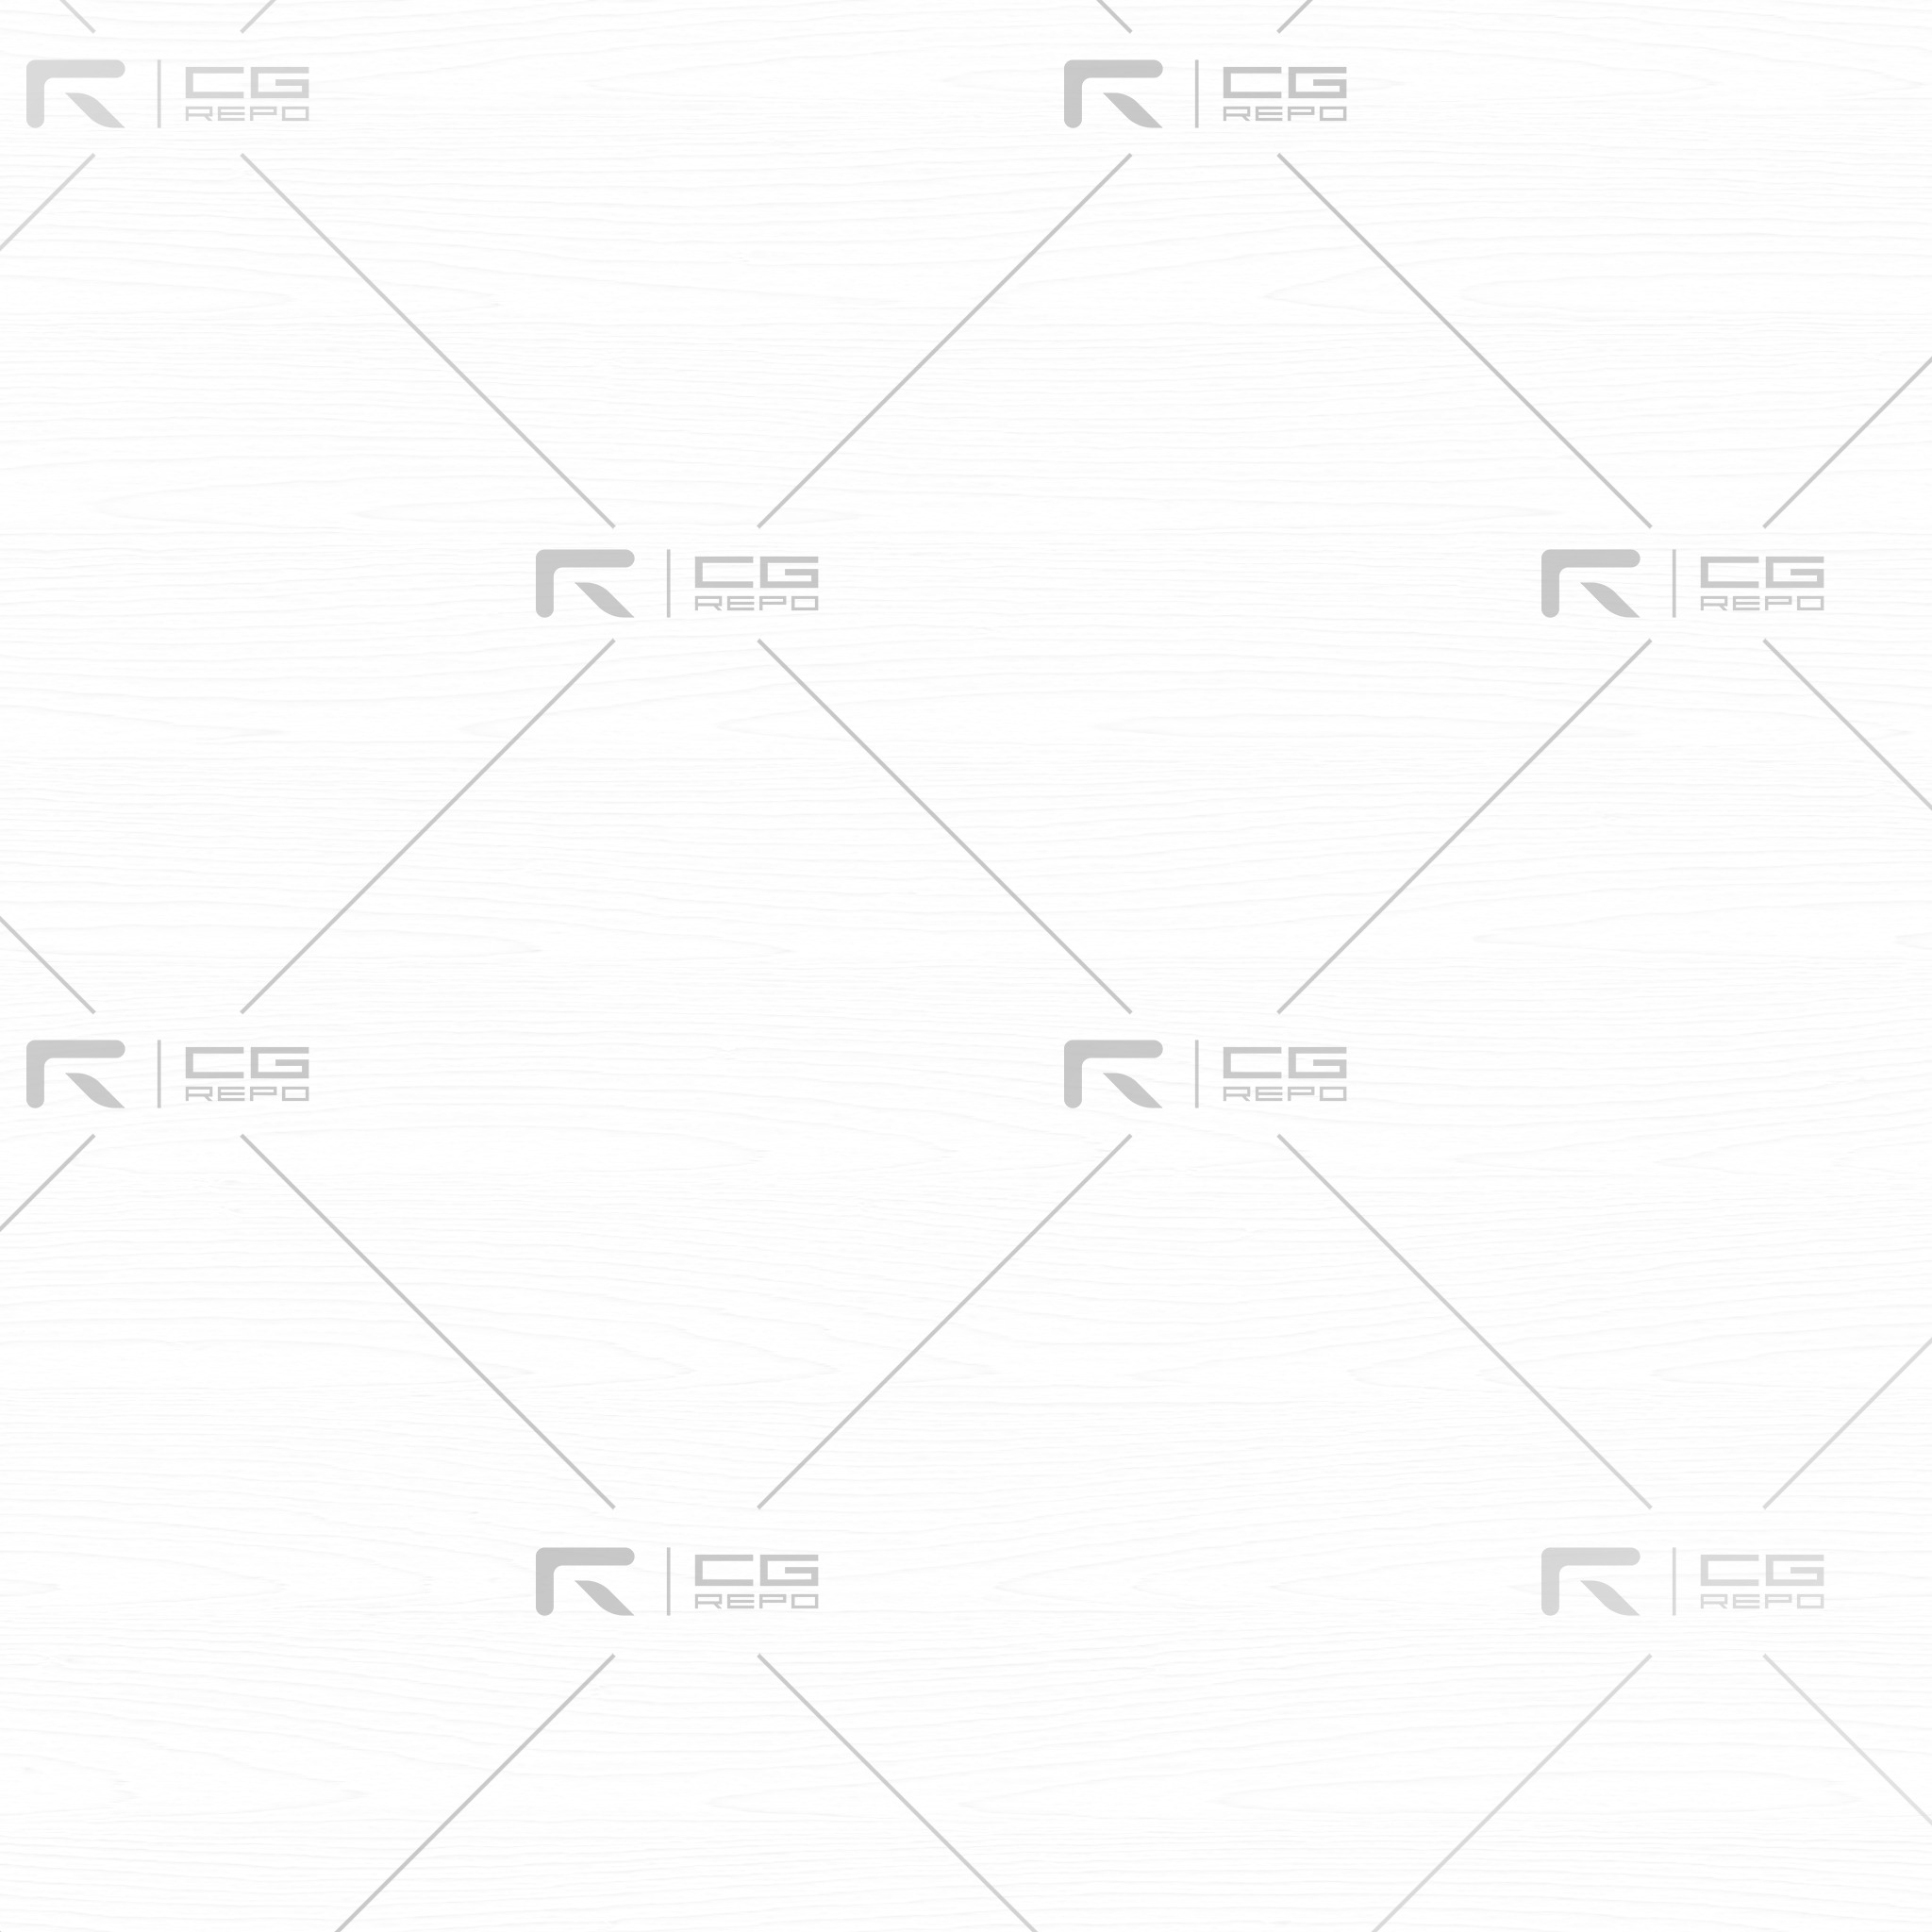 Oak - Painted Grunge Grey - Rift Sawn Ambient Occlusion Texture